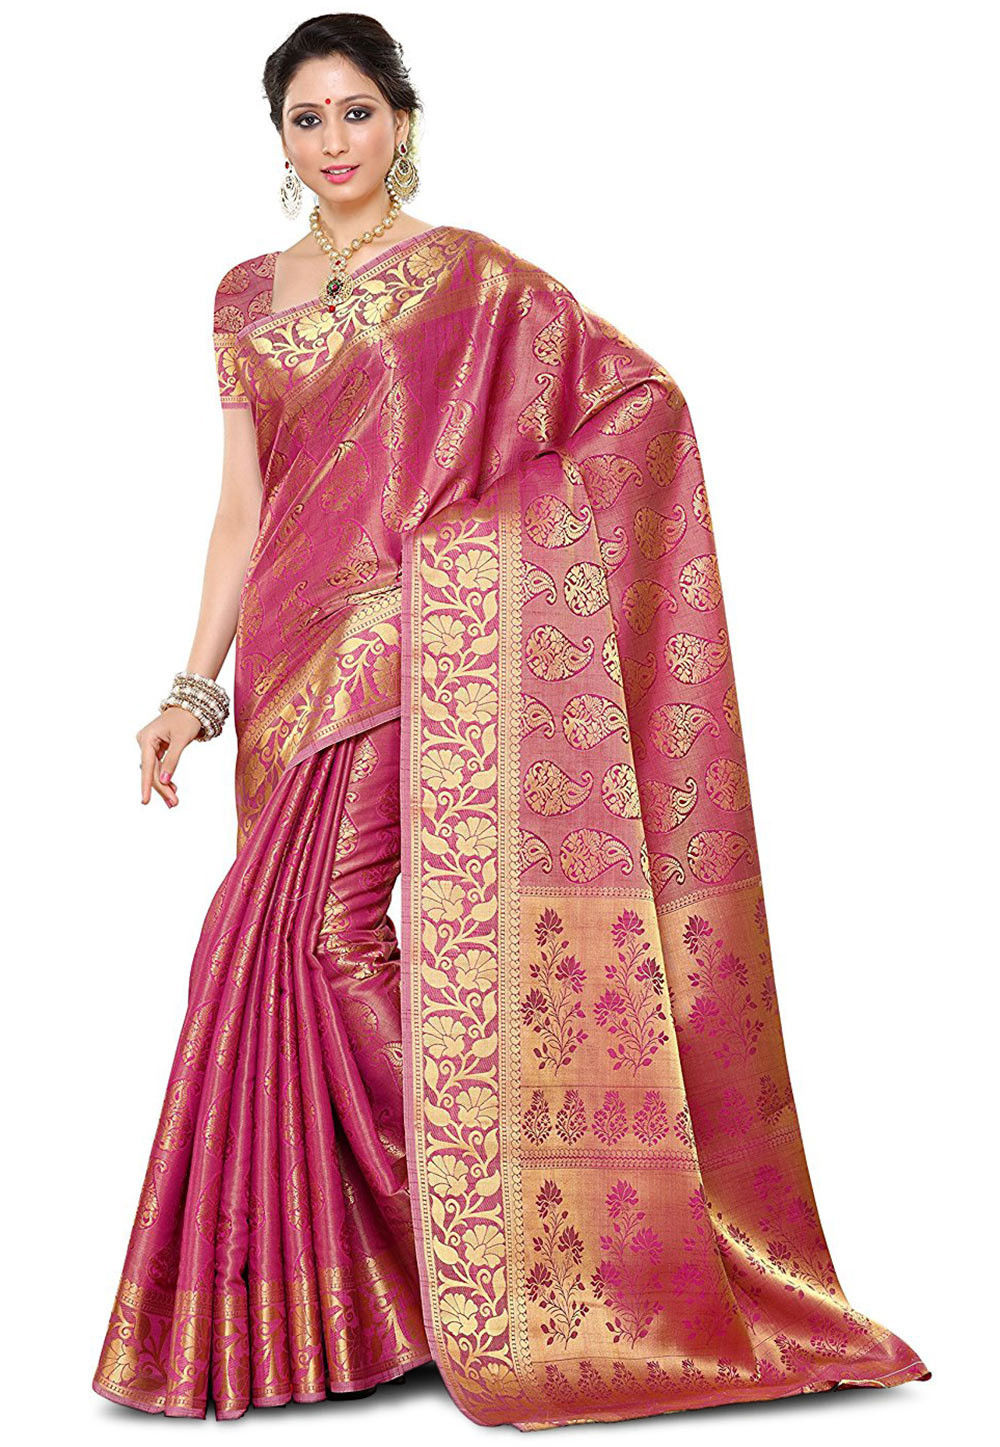 248d9f1001887e Banarasi Saree - Shop Pure Silk Banarasi Sarees Online | Utsav Fashion